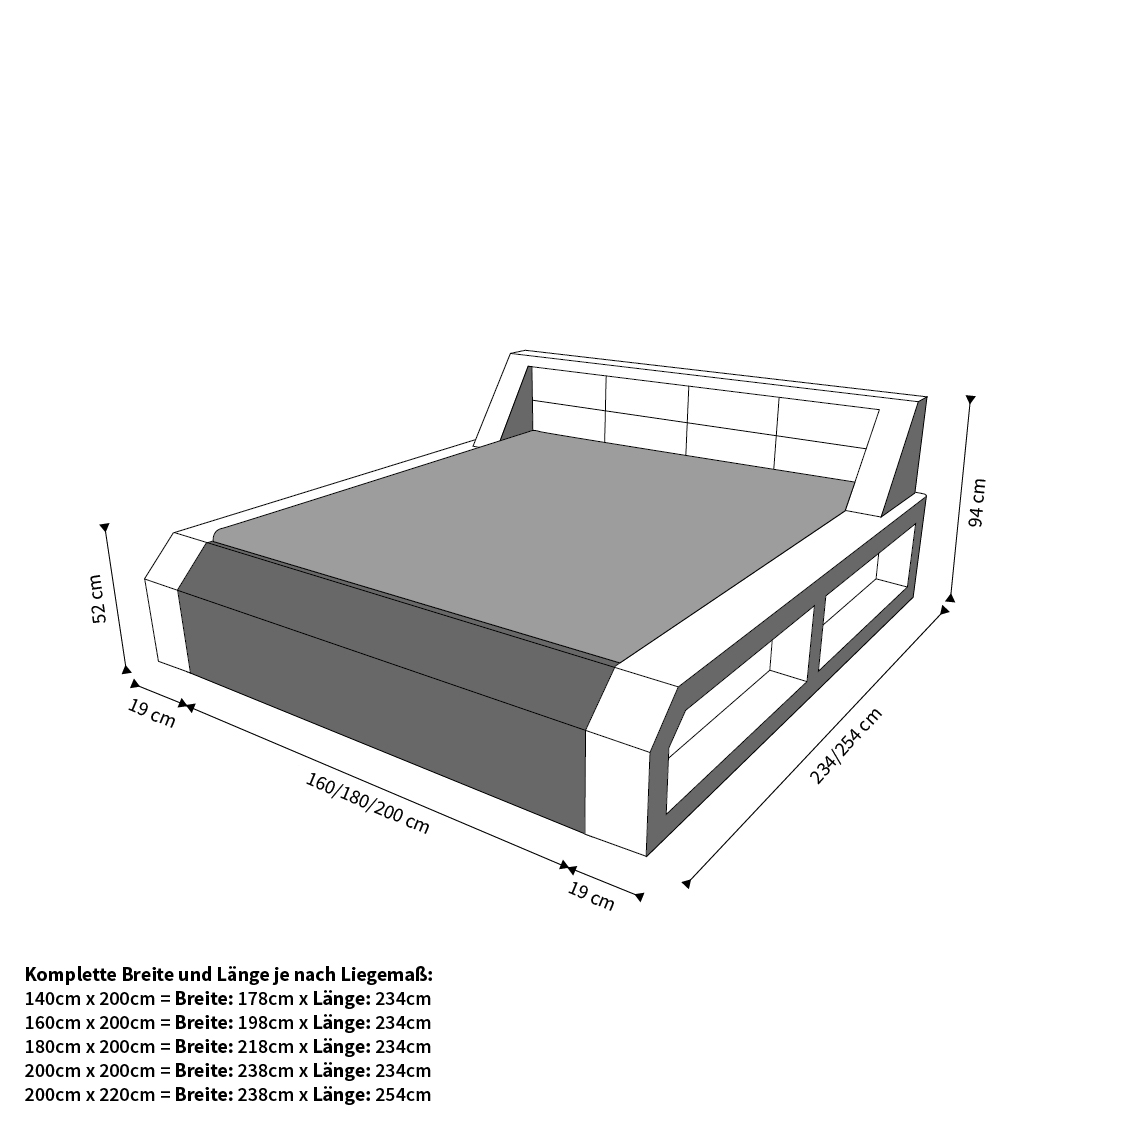 hotelbett design boxspringbett matera mit beleuchtung komplettbett ebay. Black Bedroom Furniture Sets. Home Design Ideas